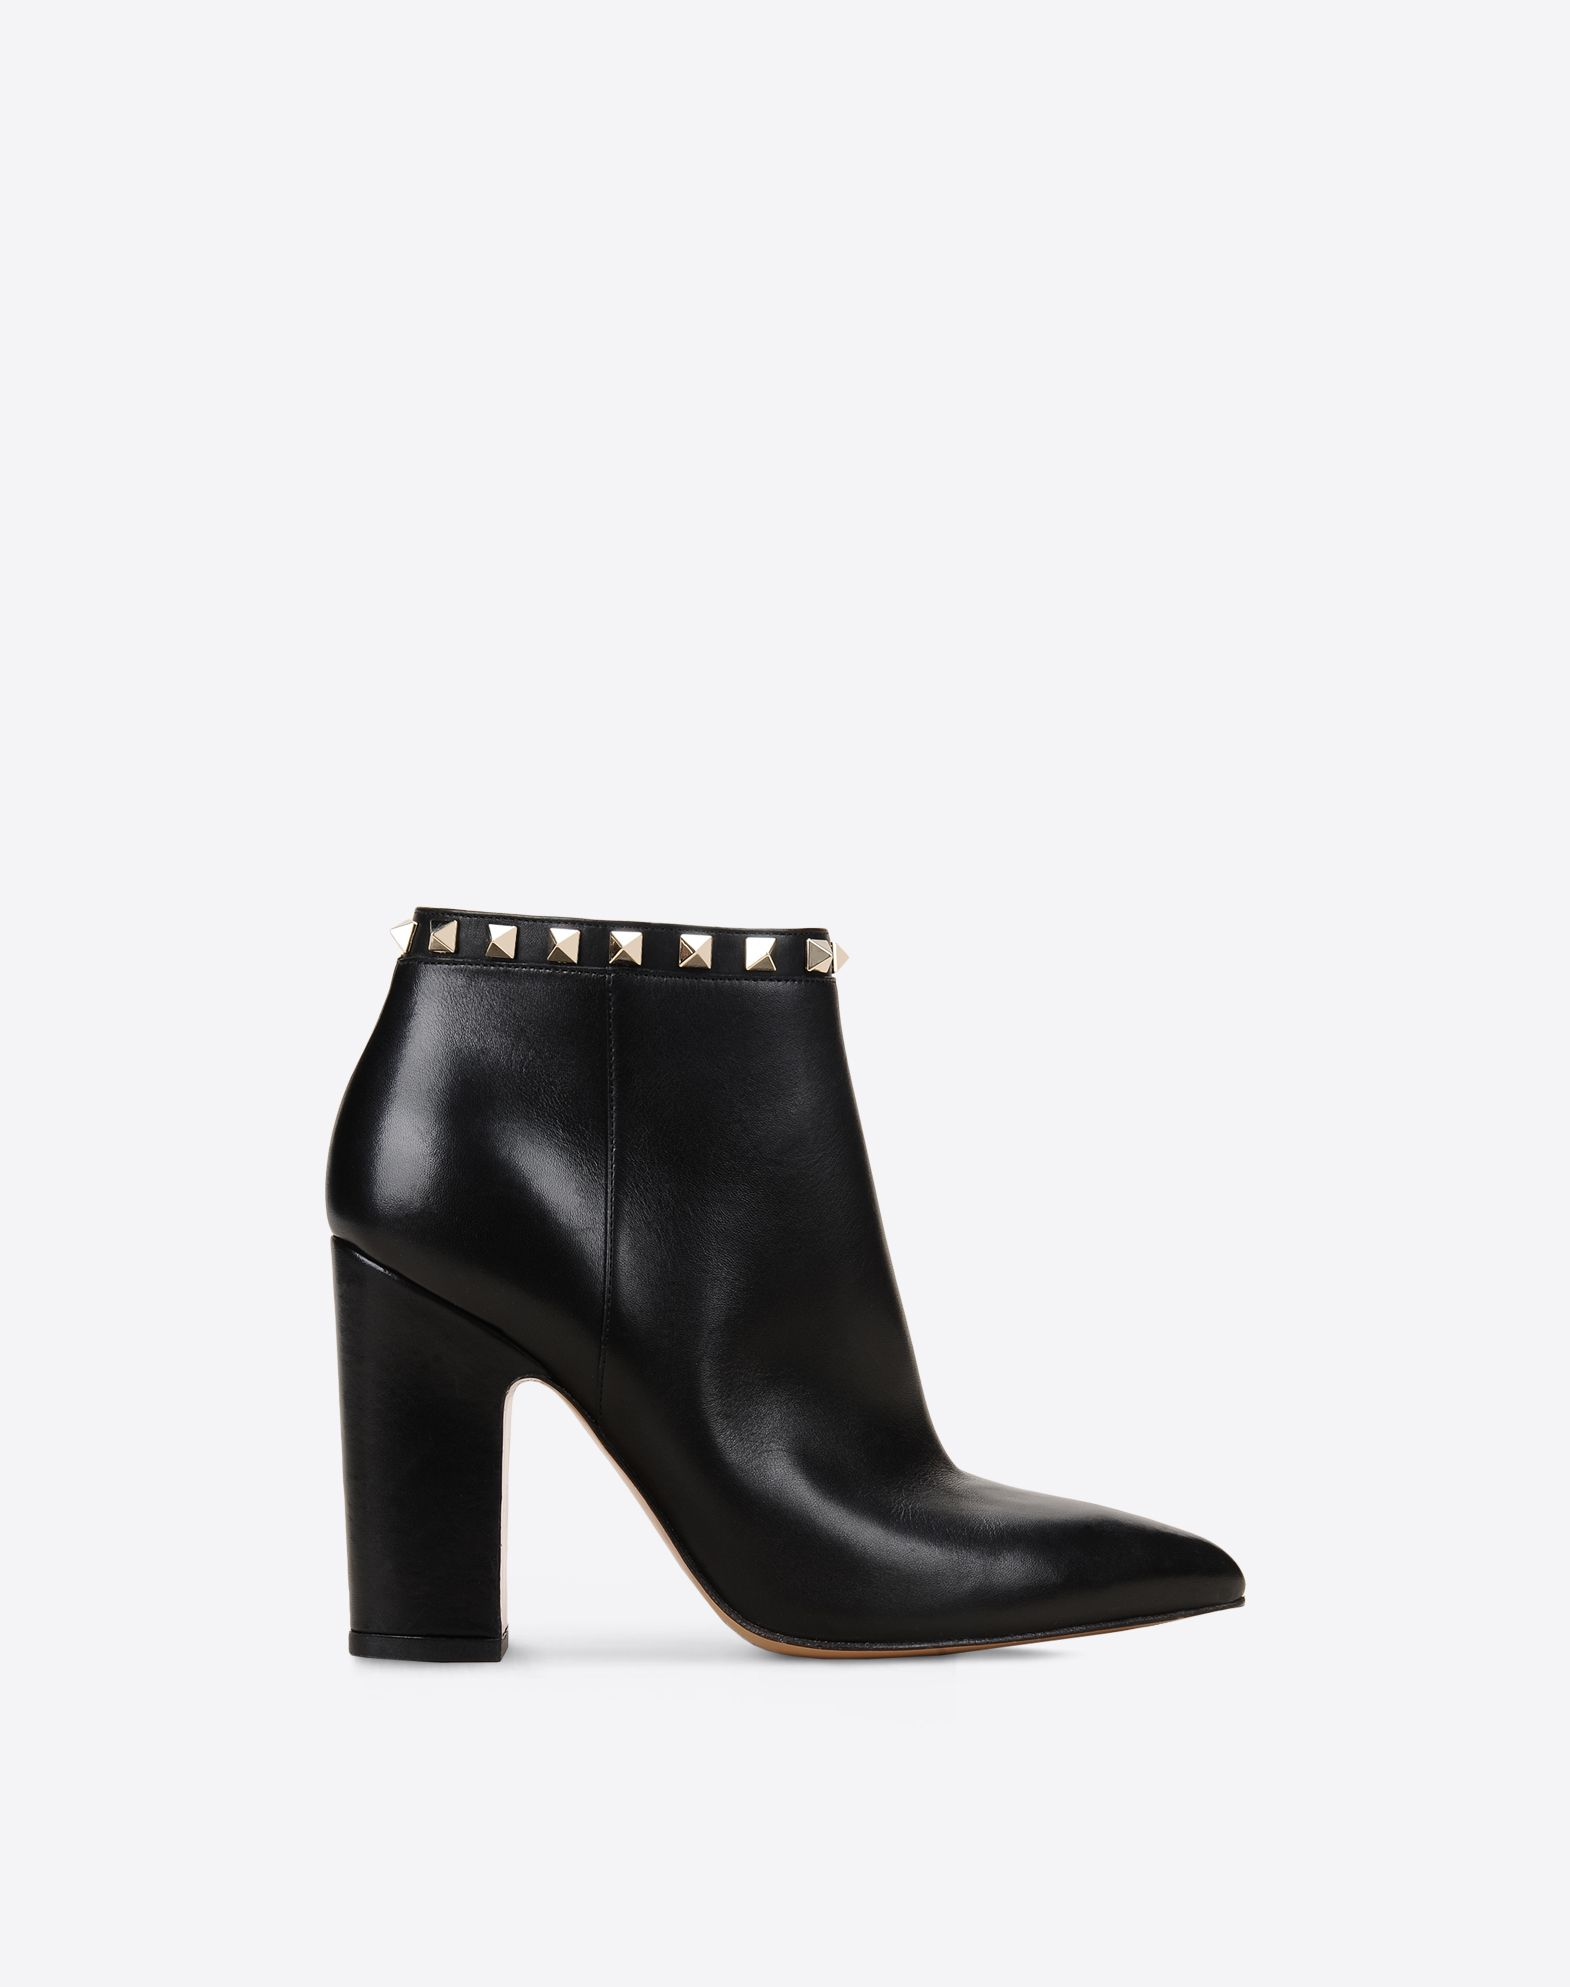 VALENTINO Studs Solid colour Zip closure Leather sole Narrow toeline Covered heel  11022519cc